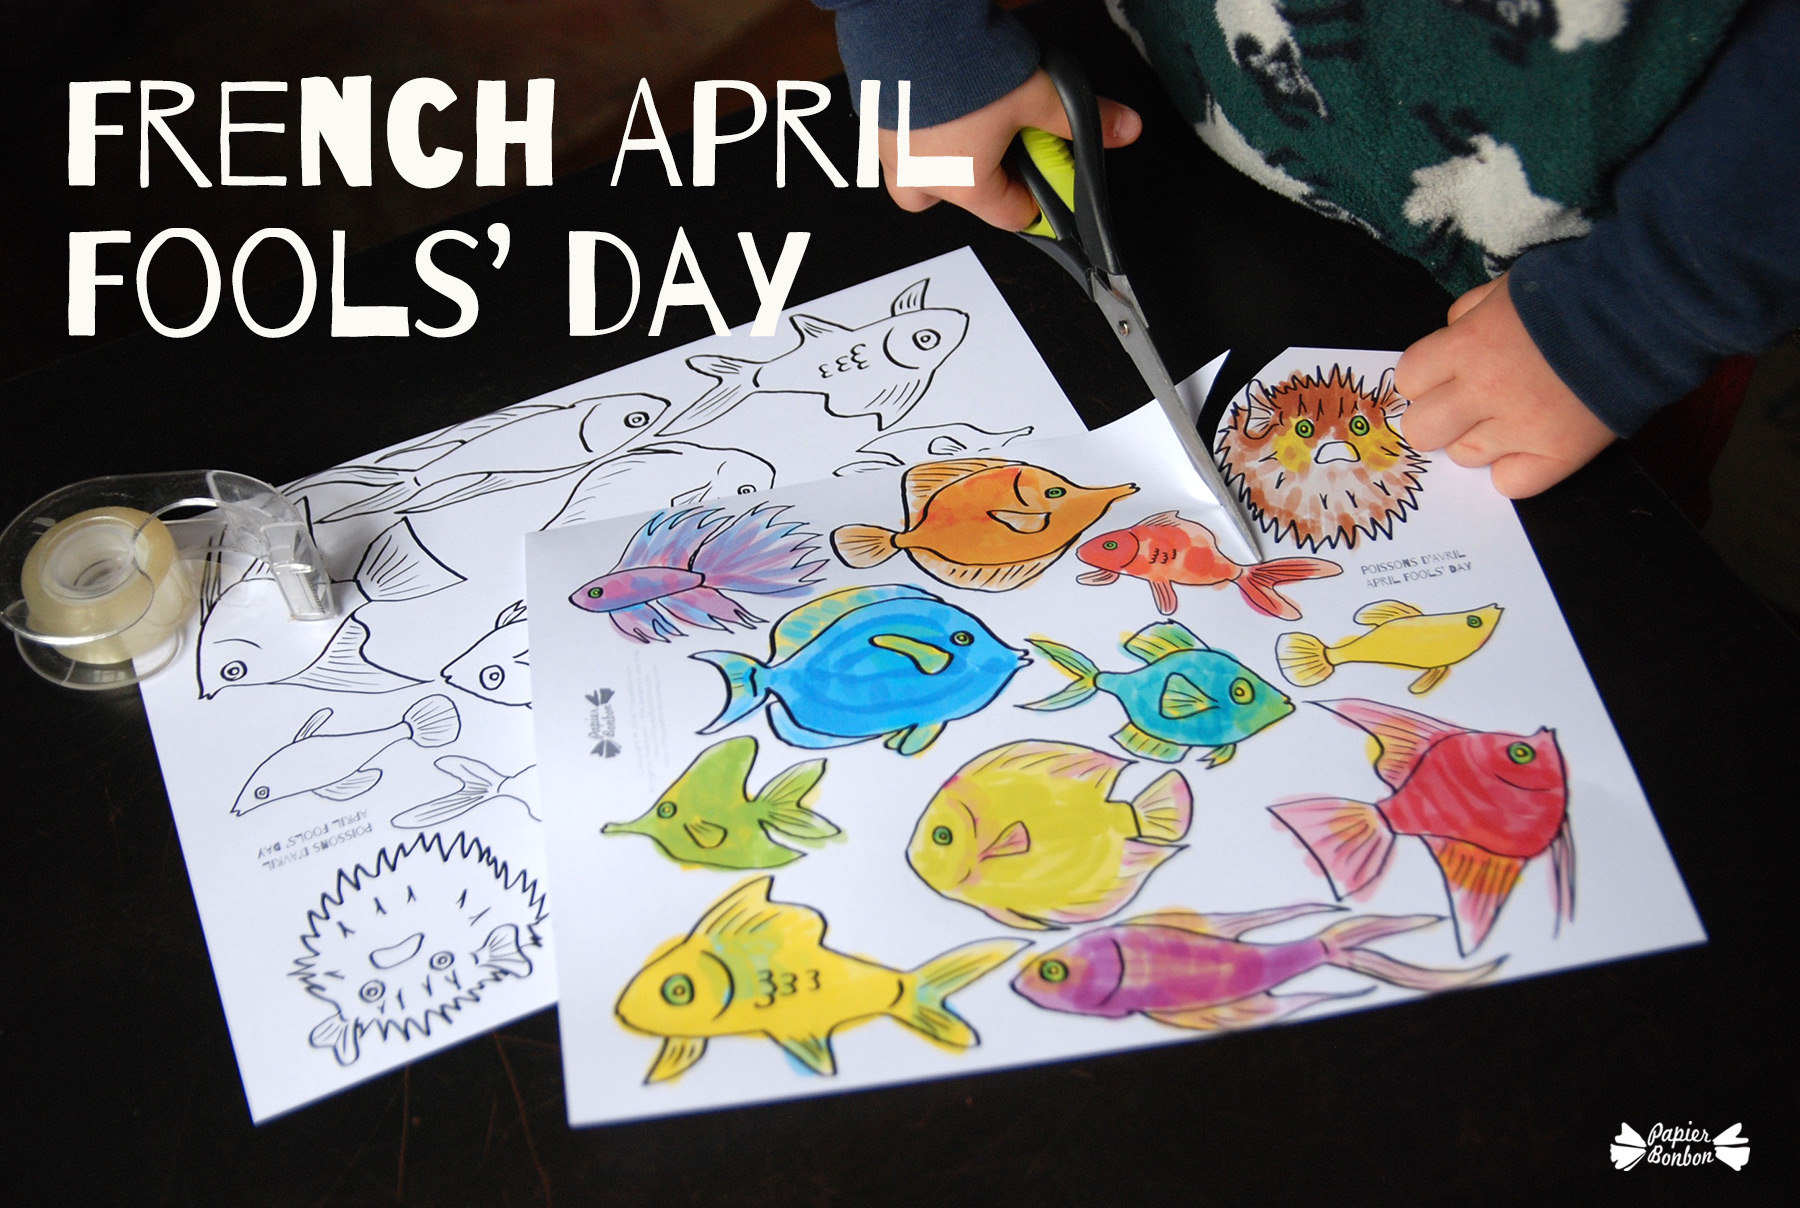 French April Fools 39 Day Tricky fishes Papier Bonbon